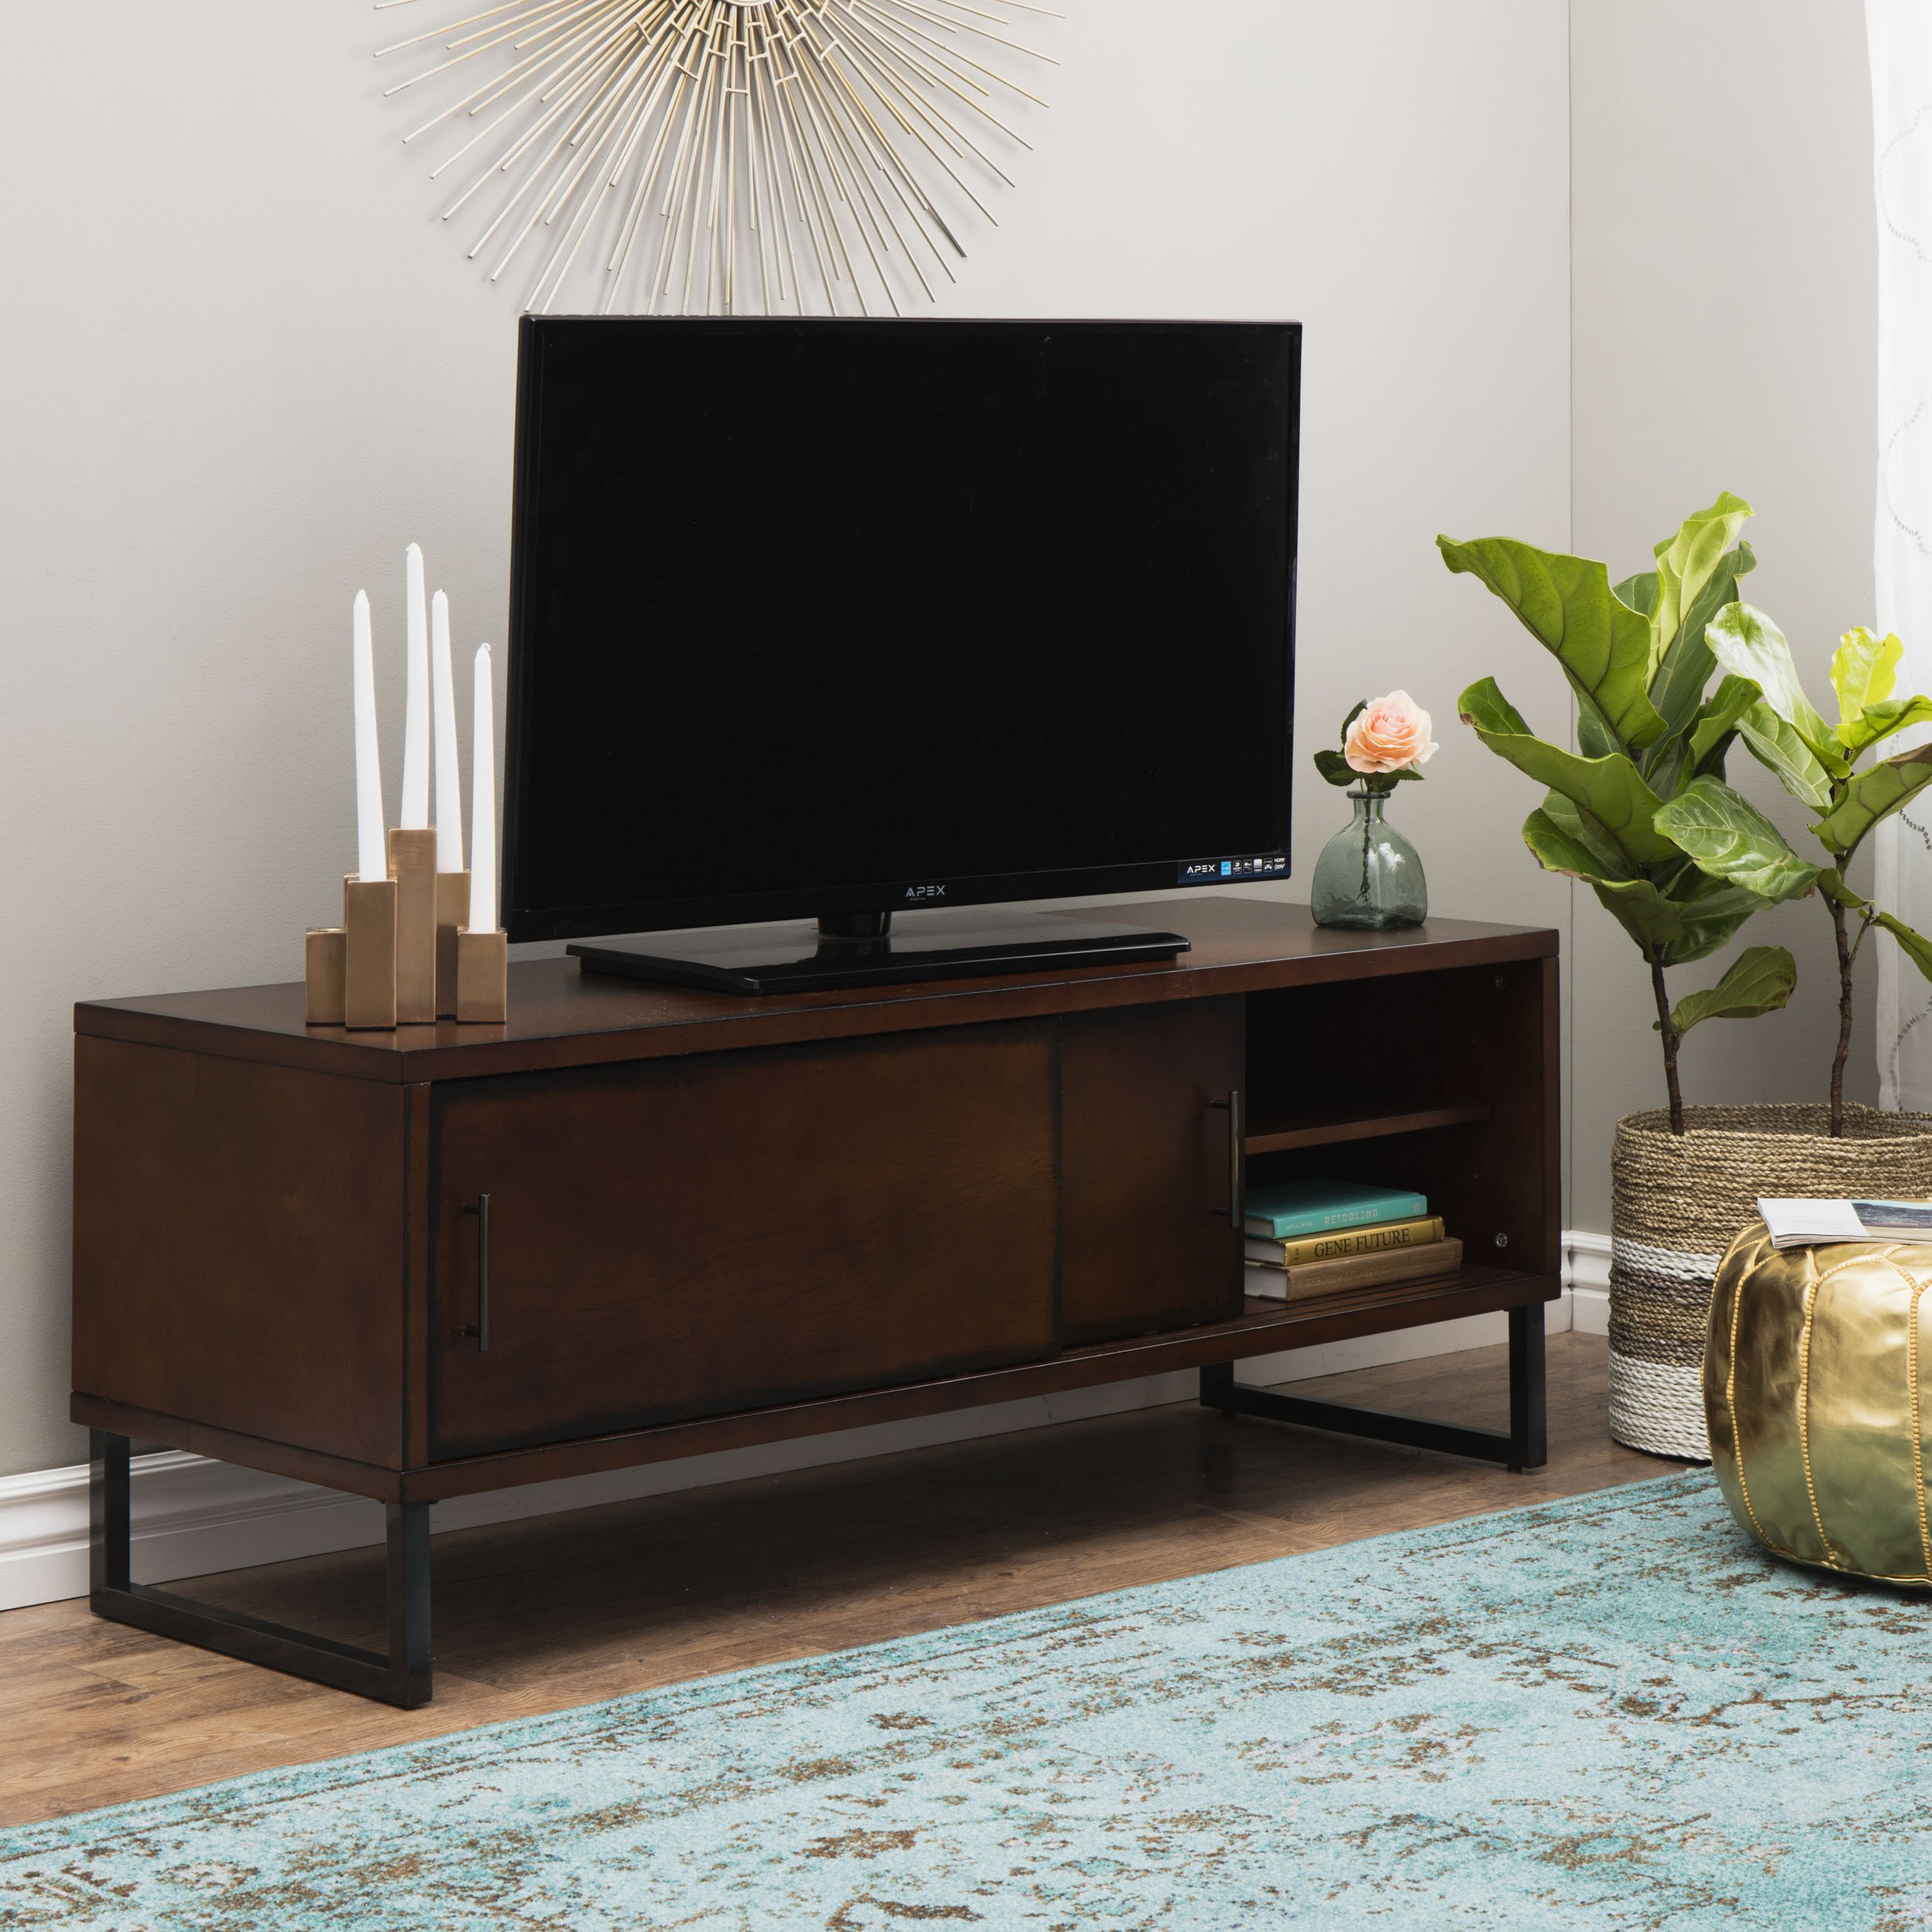 Shop Carbon Loft 54 Inch Breckenridge Walnut Entertainment Center Within Canyon 54 Inch Tv Stands (View 22 of 30)